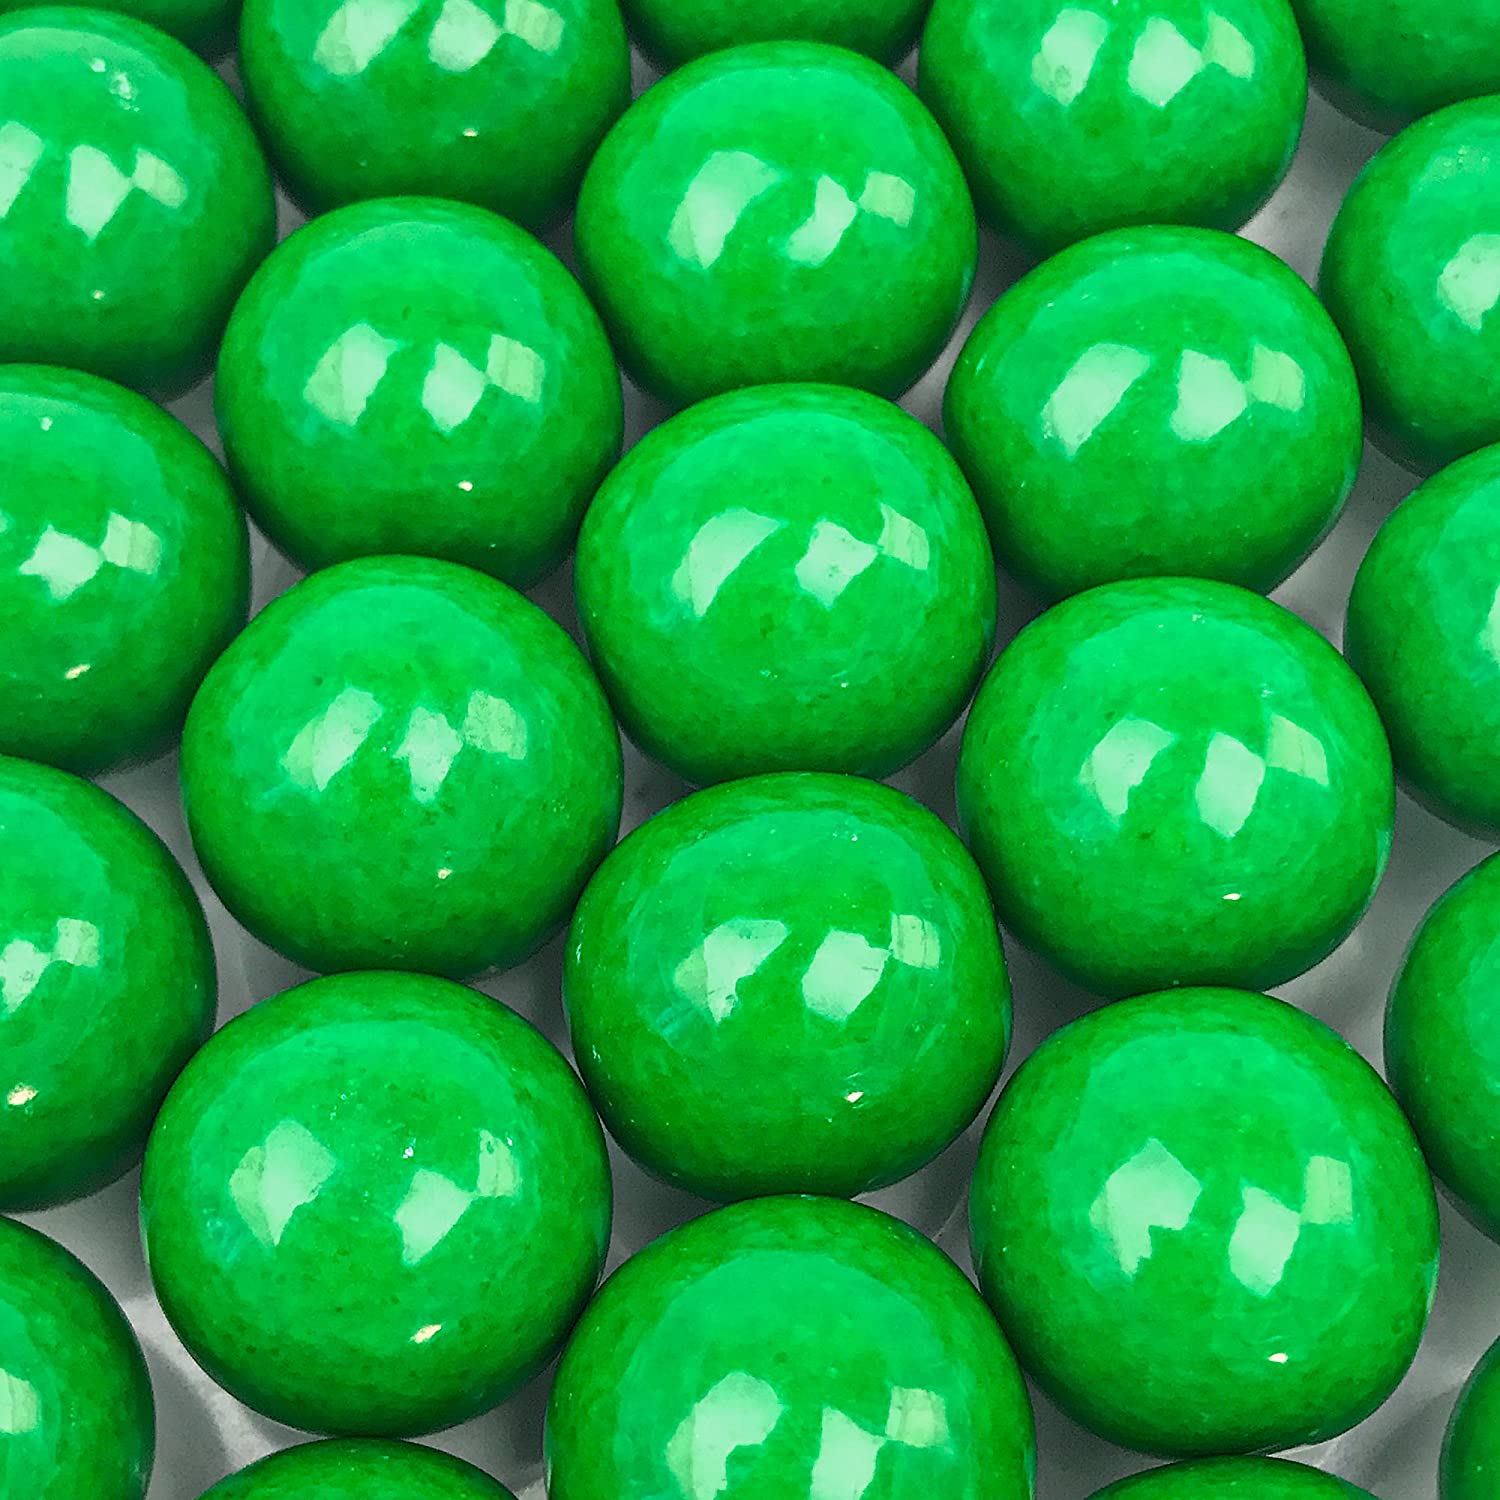 Green Gumballs - 2 Pound Bags - Large - One Inch in Diameter